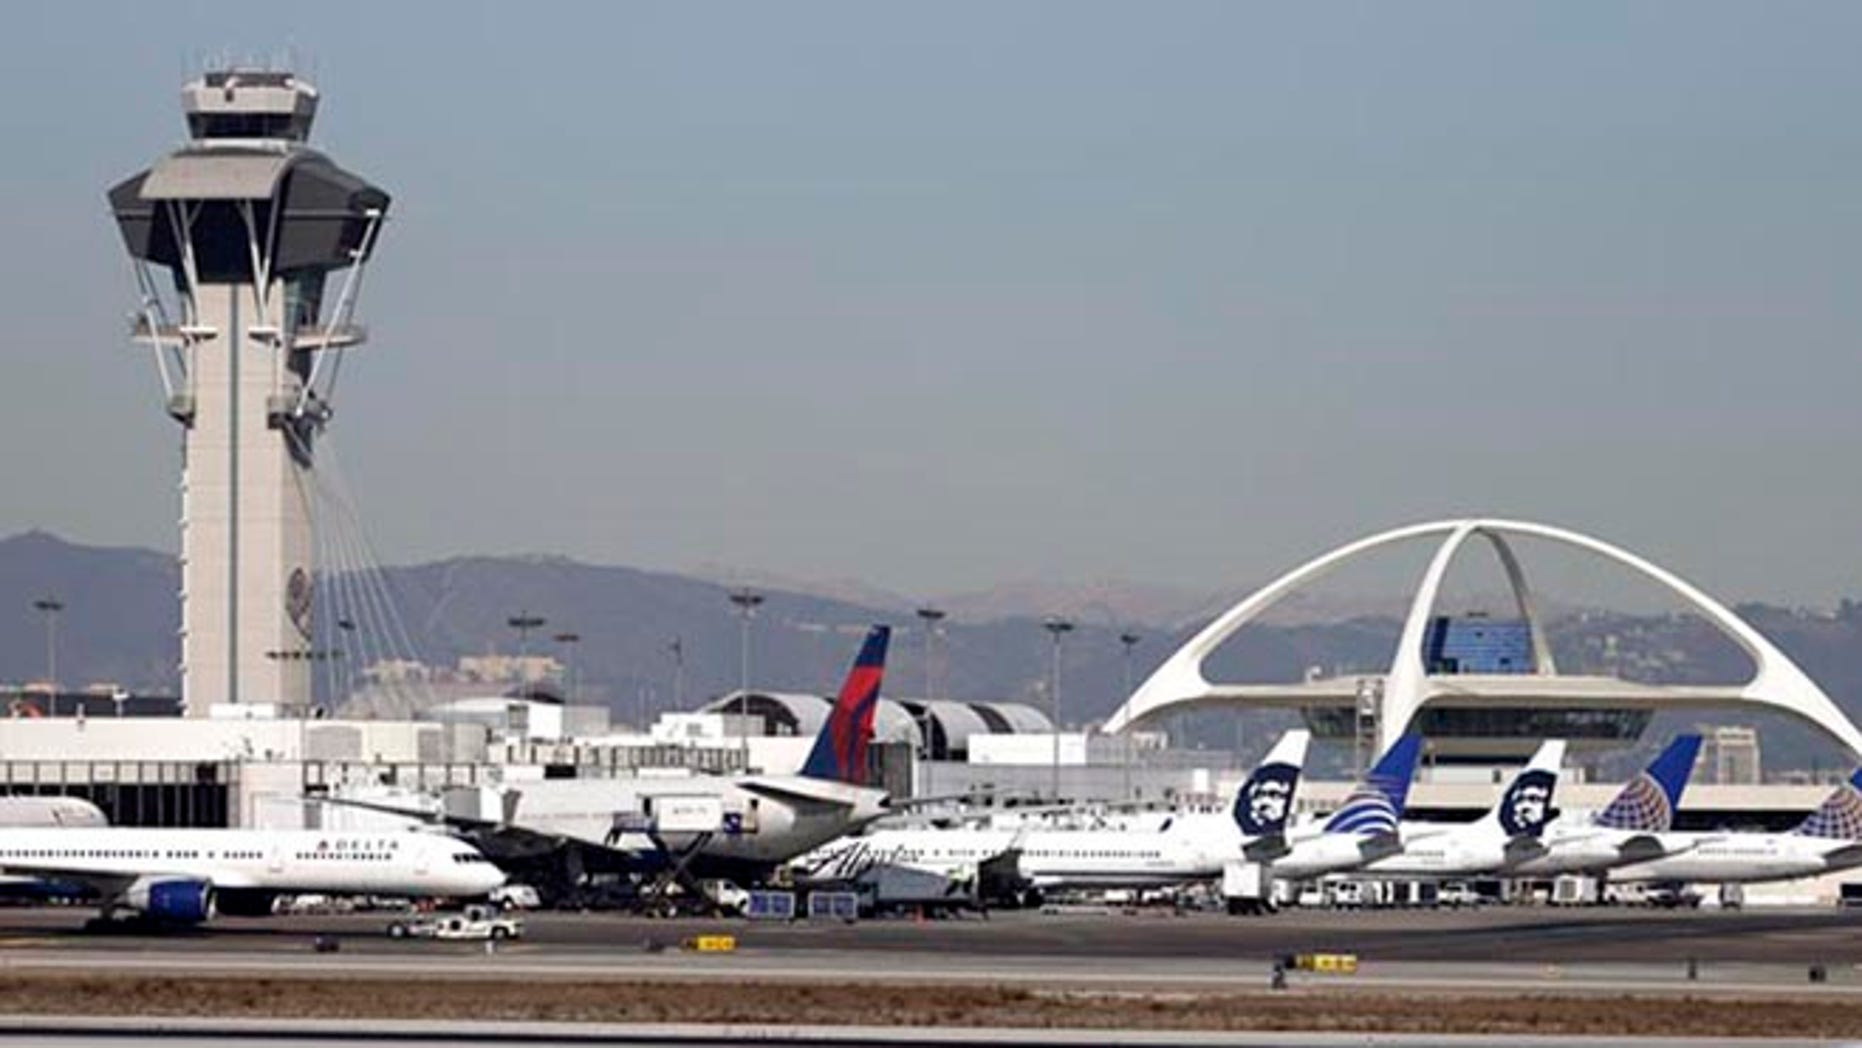 Airplanes sit on the tarmac at Los Angeles International Airport Friday, Nov. 1, 2013.  (AP Photo/Gregory Bull)